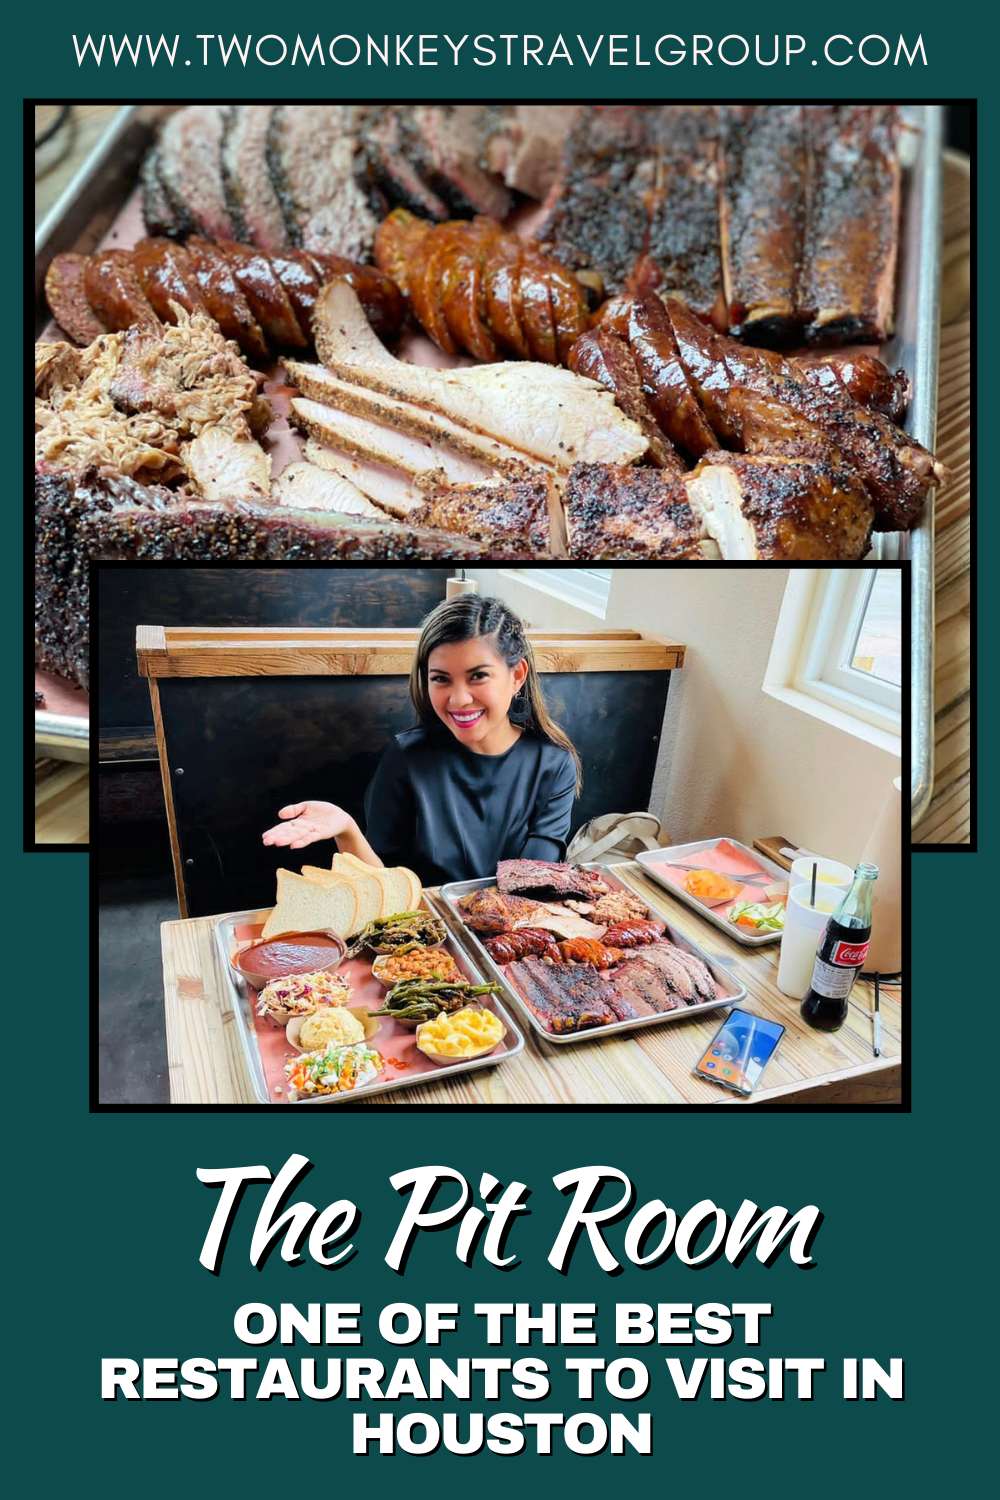 The Pit Room One of the Best Restaurants To Visit in Houston